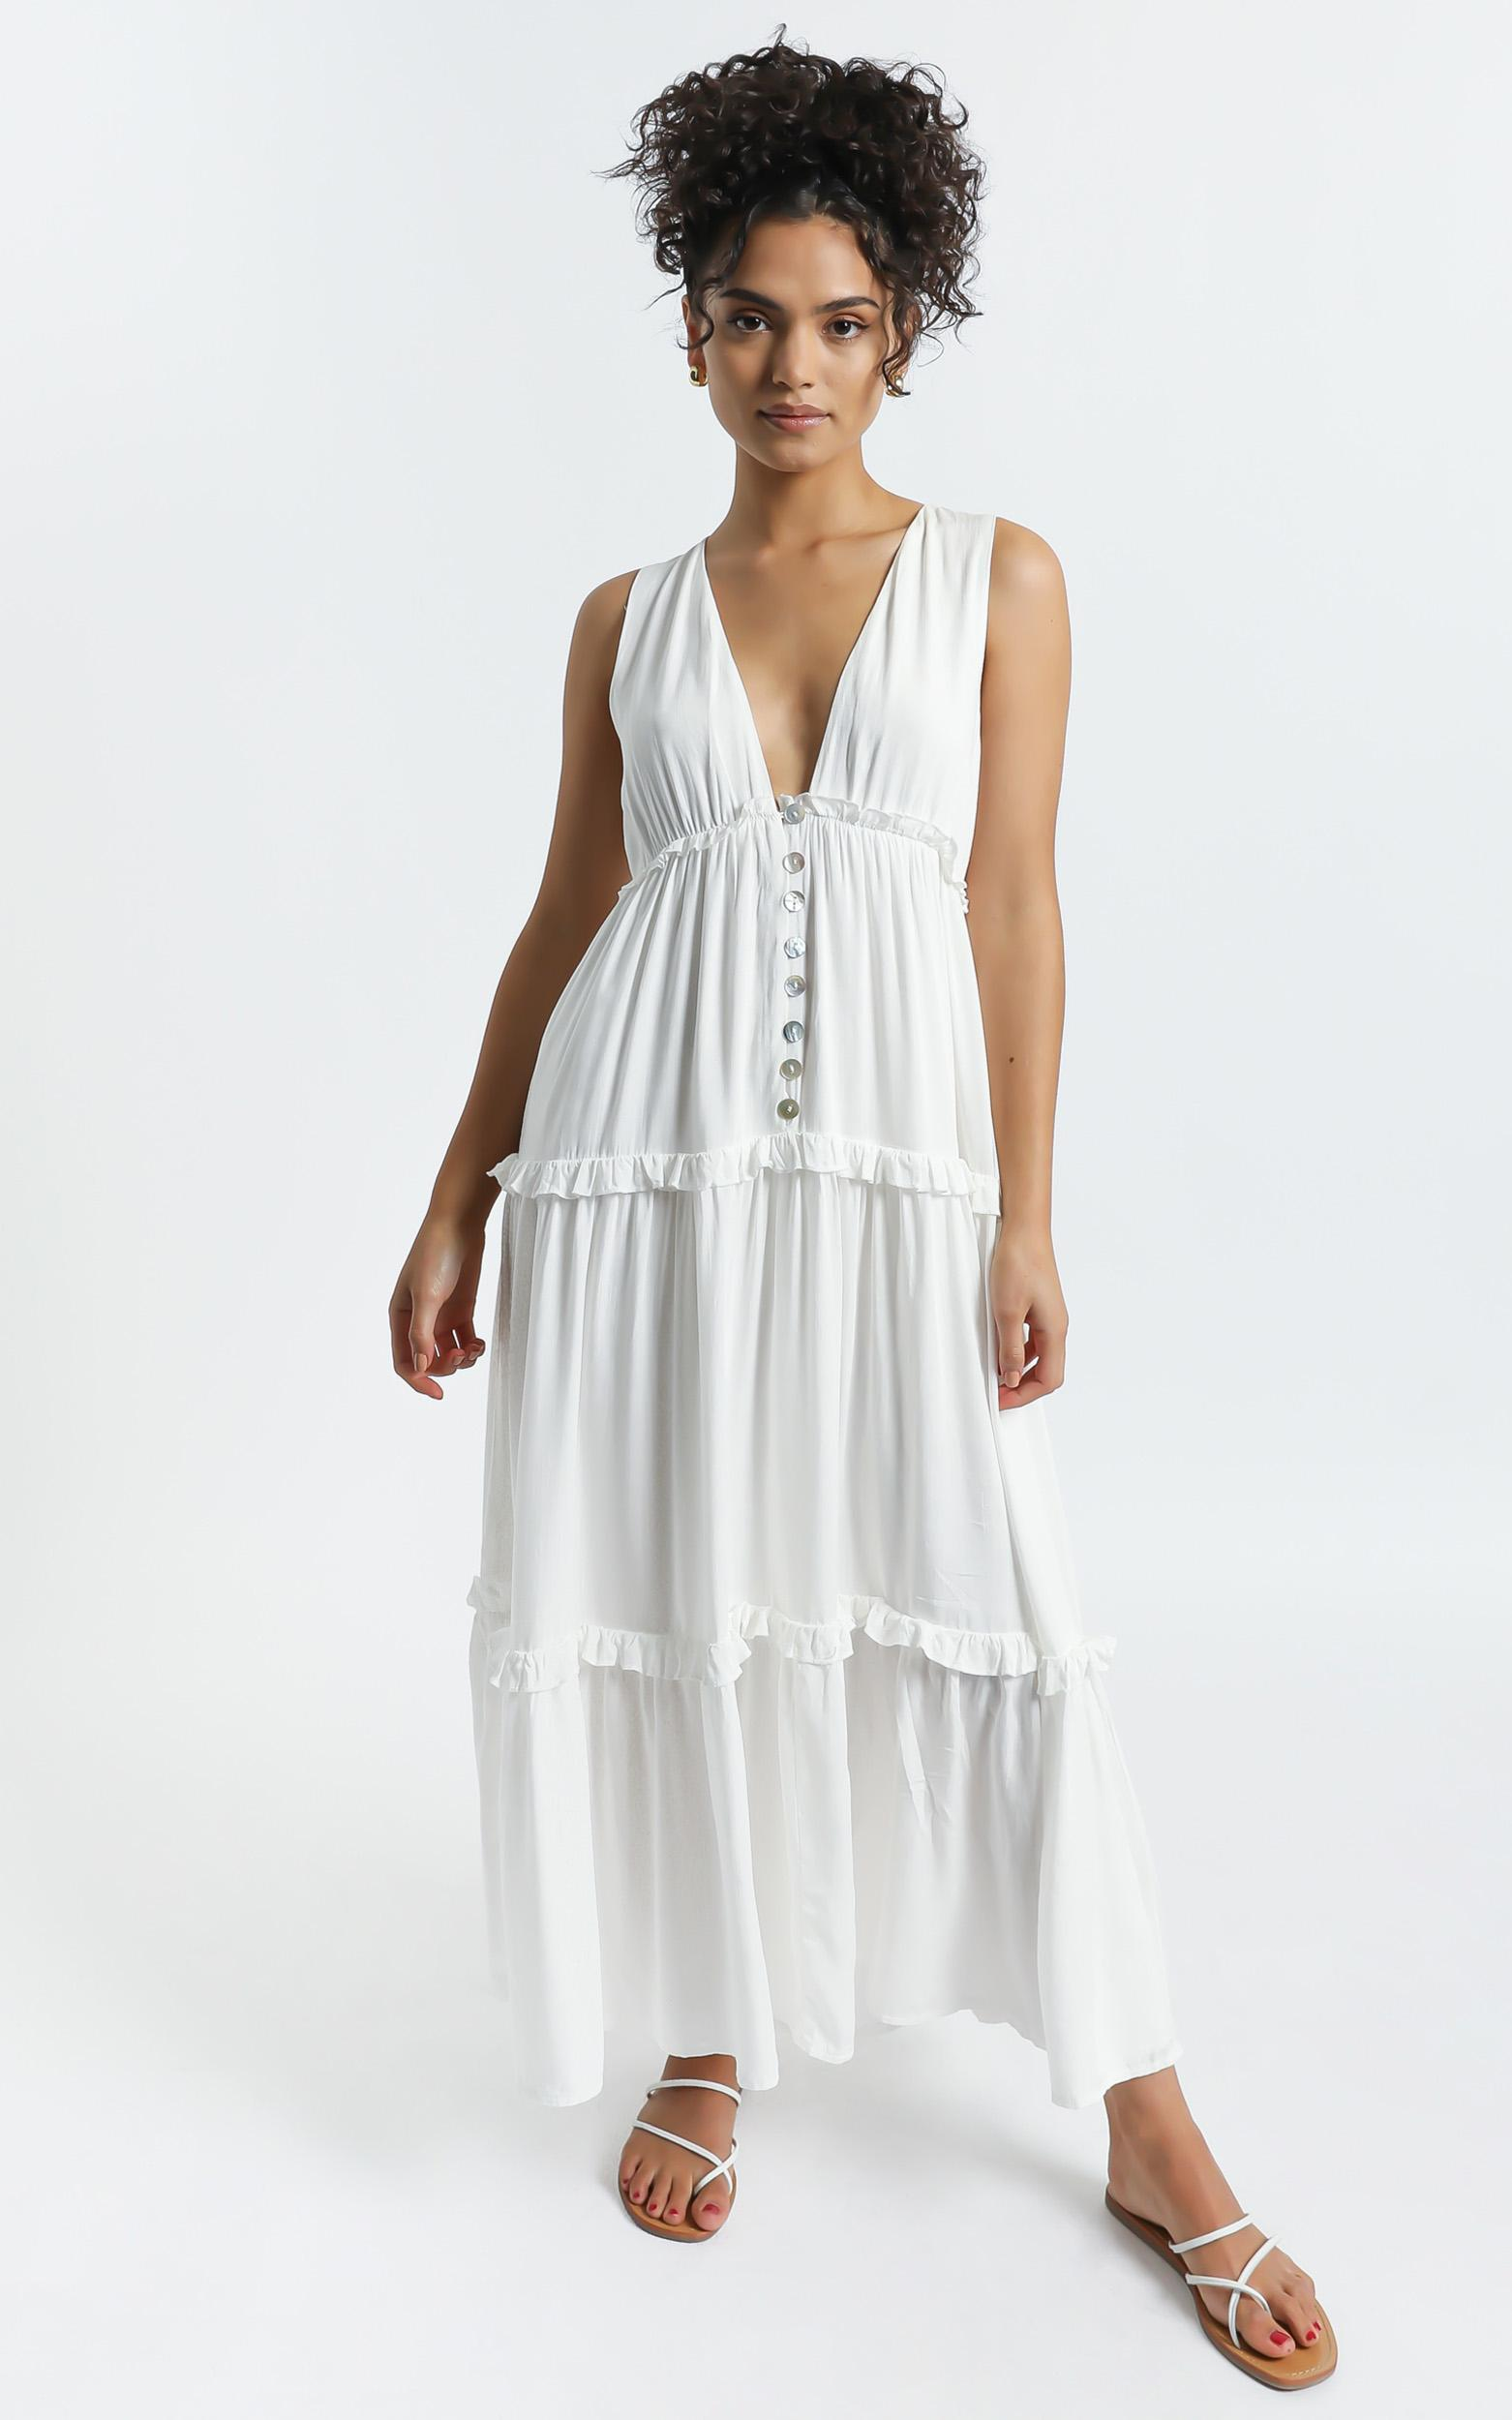 Arlana Dress in White - 6 (XS), White, hi-res image number null